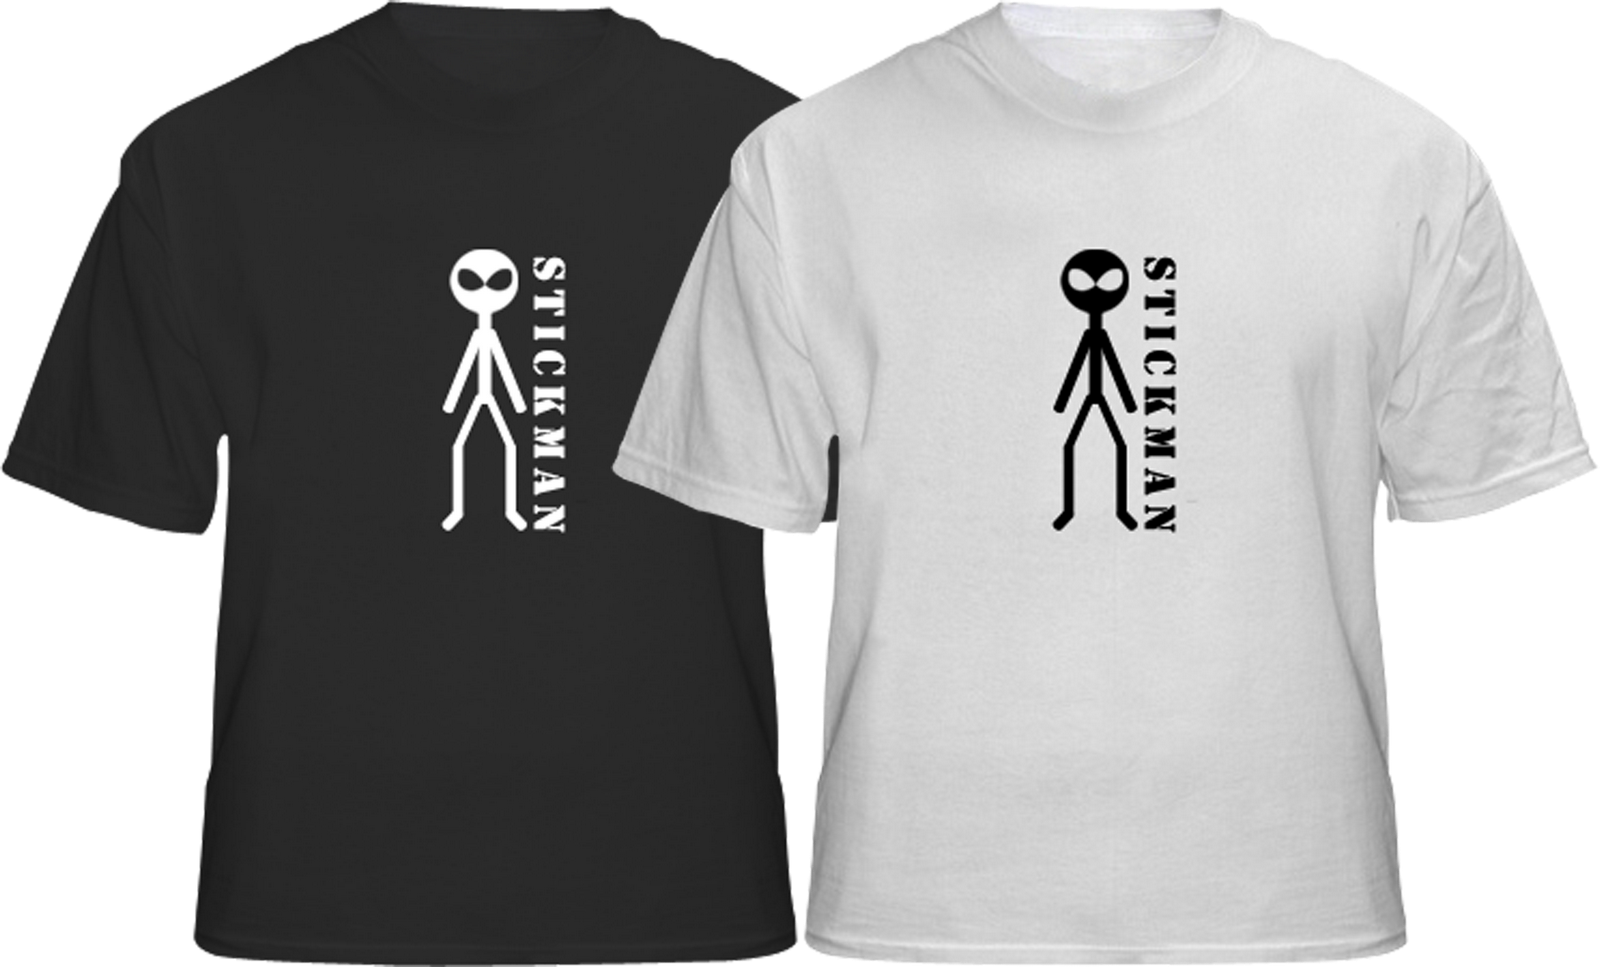 Azuna creative design and printing services ready made for Dropship t shirt business